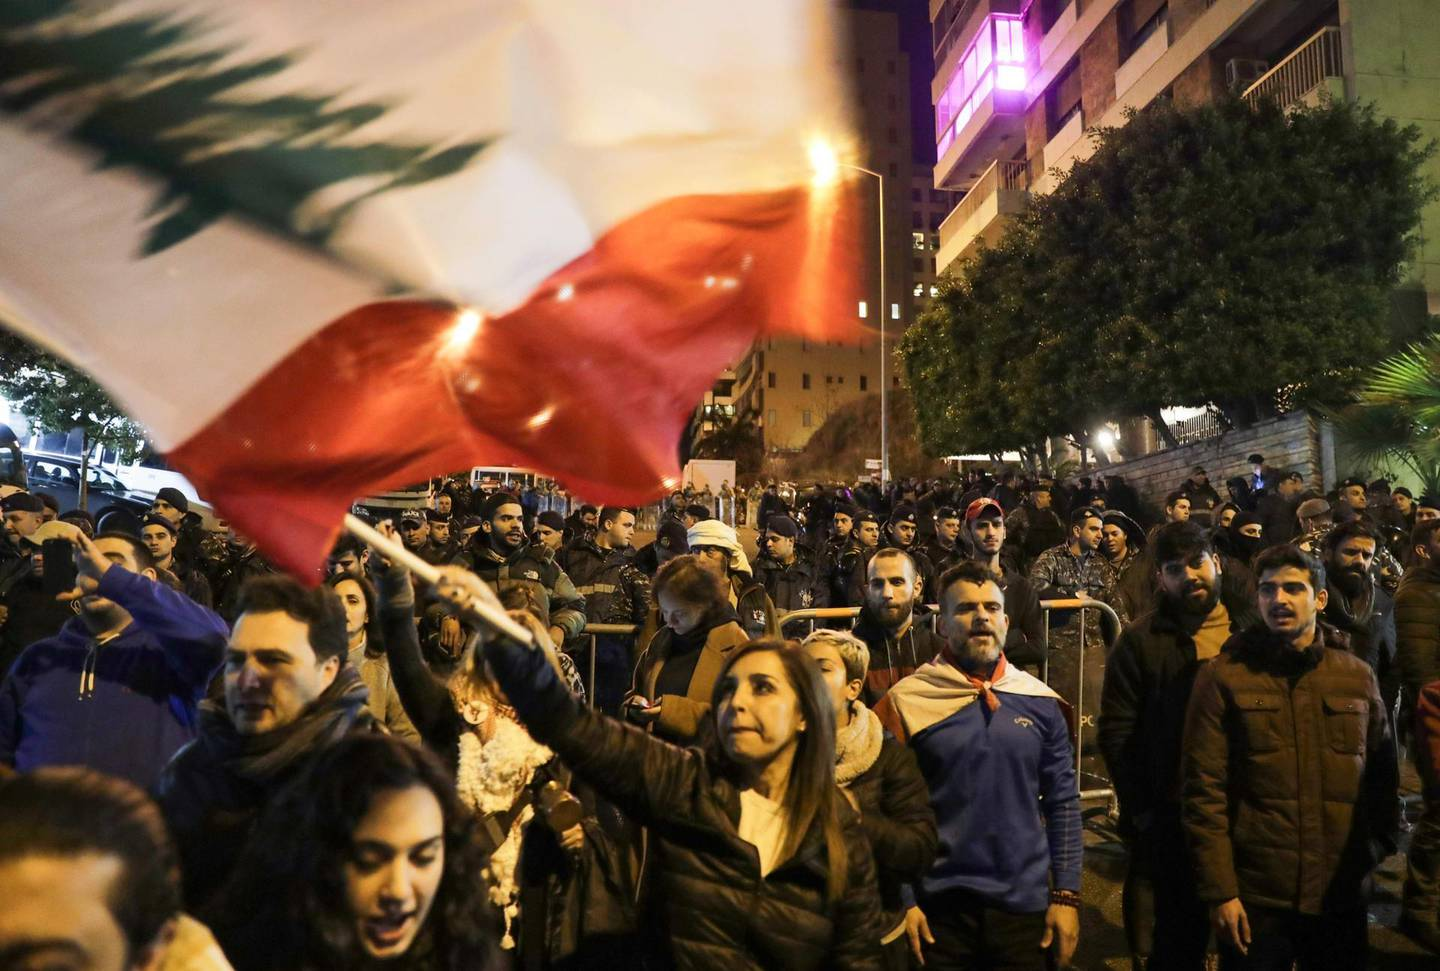 Lebanese protesters wave the national flag as they gather outside the house of Lebanon's new prime minister in the capital Beirut, calling for resignation less than 10 days after he was appointed, on December 28, 2019.  Protests continued after the resignation of the previous prime minister, while political parties negotiated for weeks before nominating Hassan Diab, a professor and former education minister, to replace him on December 19.  / AFP / ANWAR AMRO